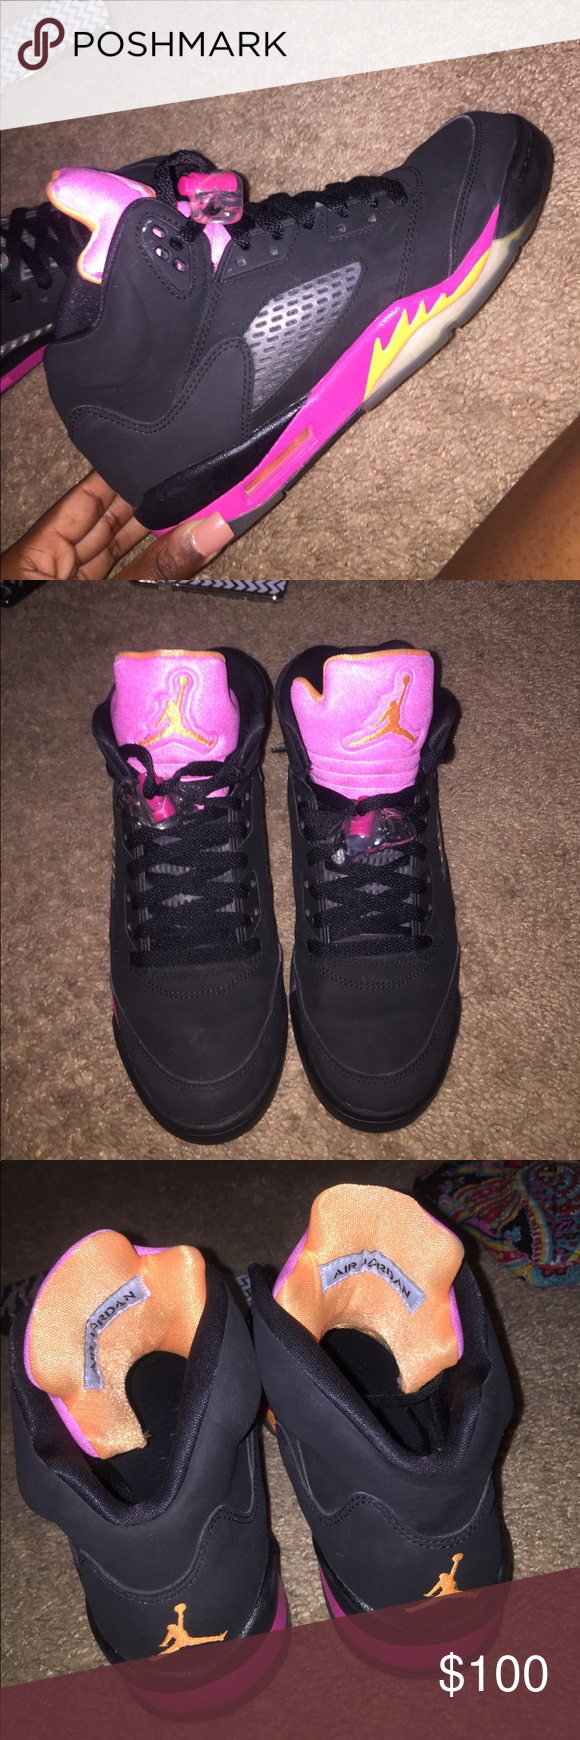 on sale 30805 050a1 jordan retro 5s citrus-pink these are so nice! very good condition and  unique. willing to negotiate price. size us 6.5 but can fit up to 8 9.  unfortunately ...